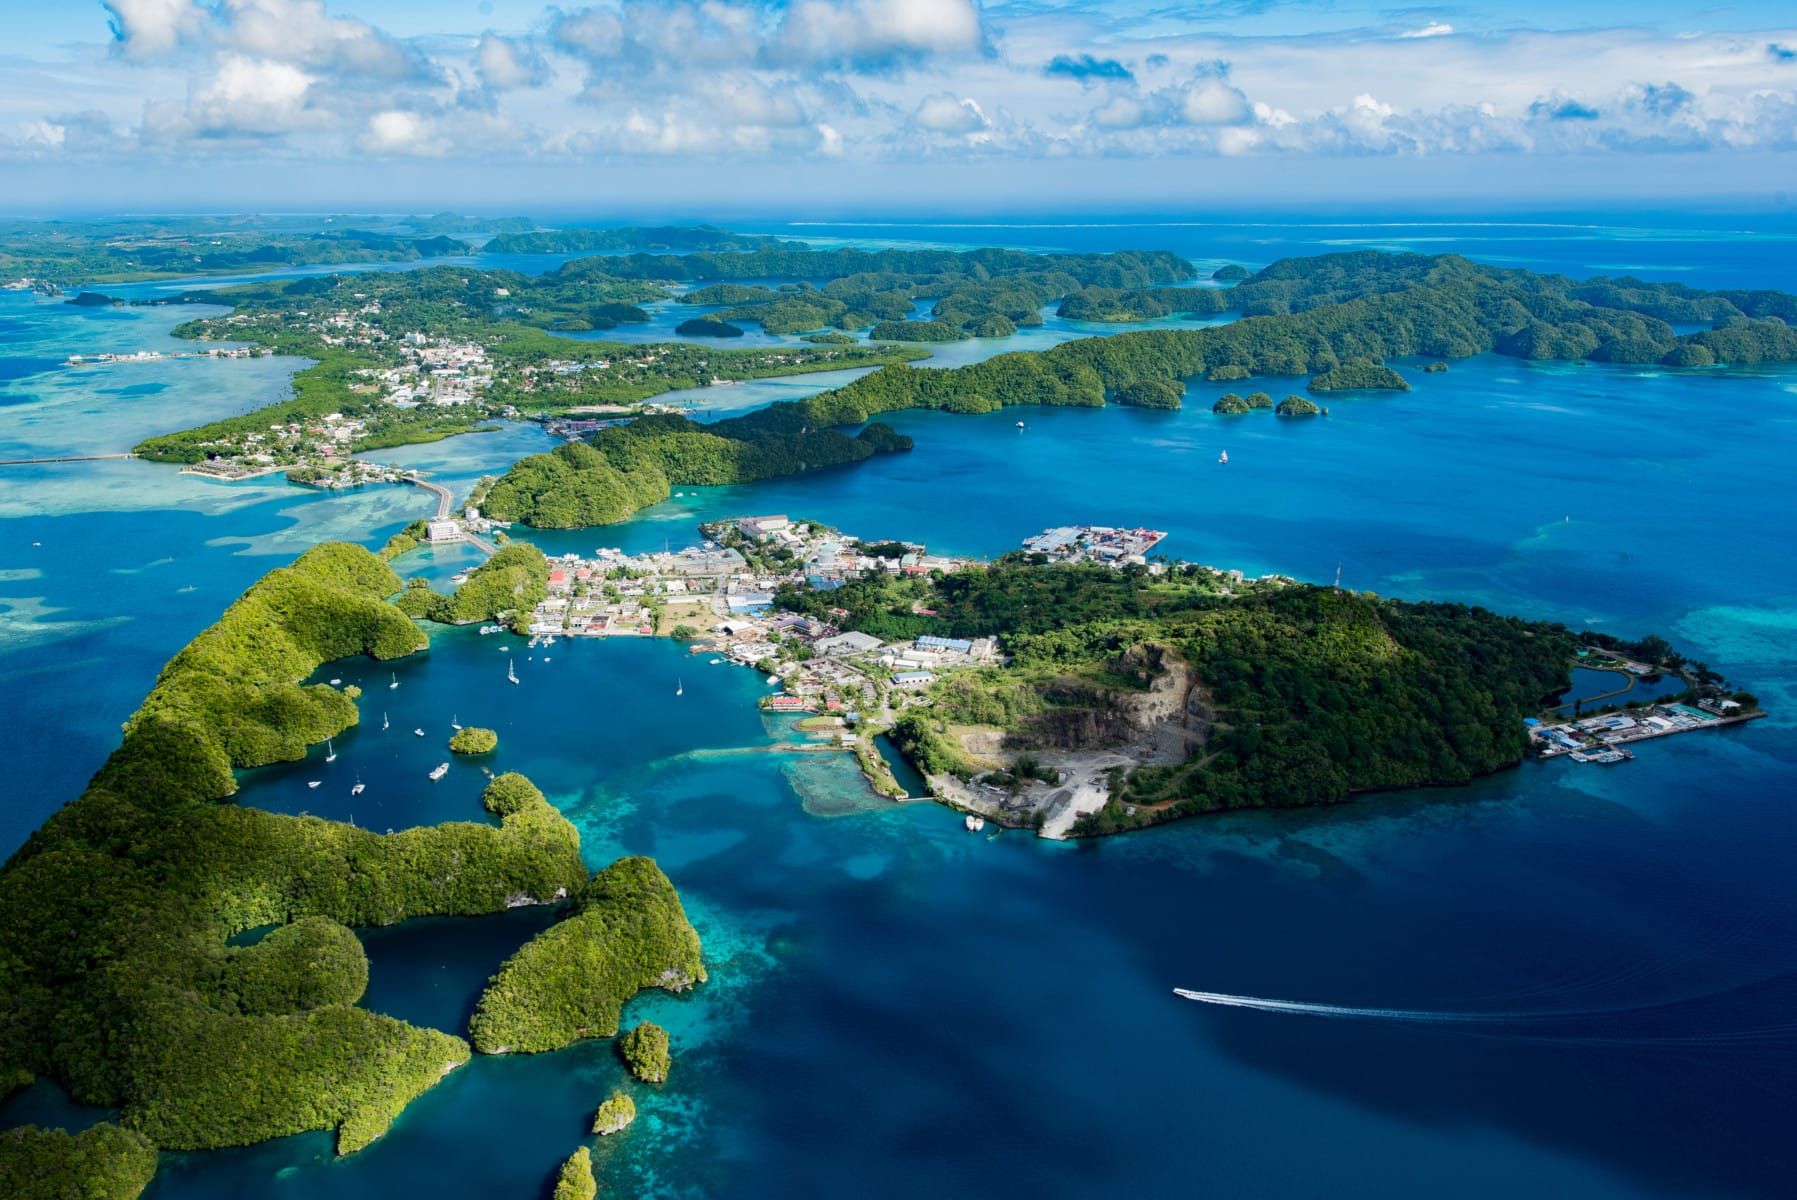 Palau Malakal Island in Oceania, the continent that ranks high on sustainability